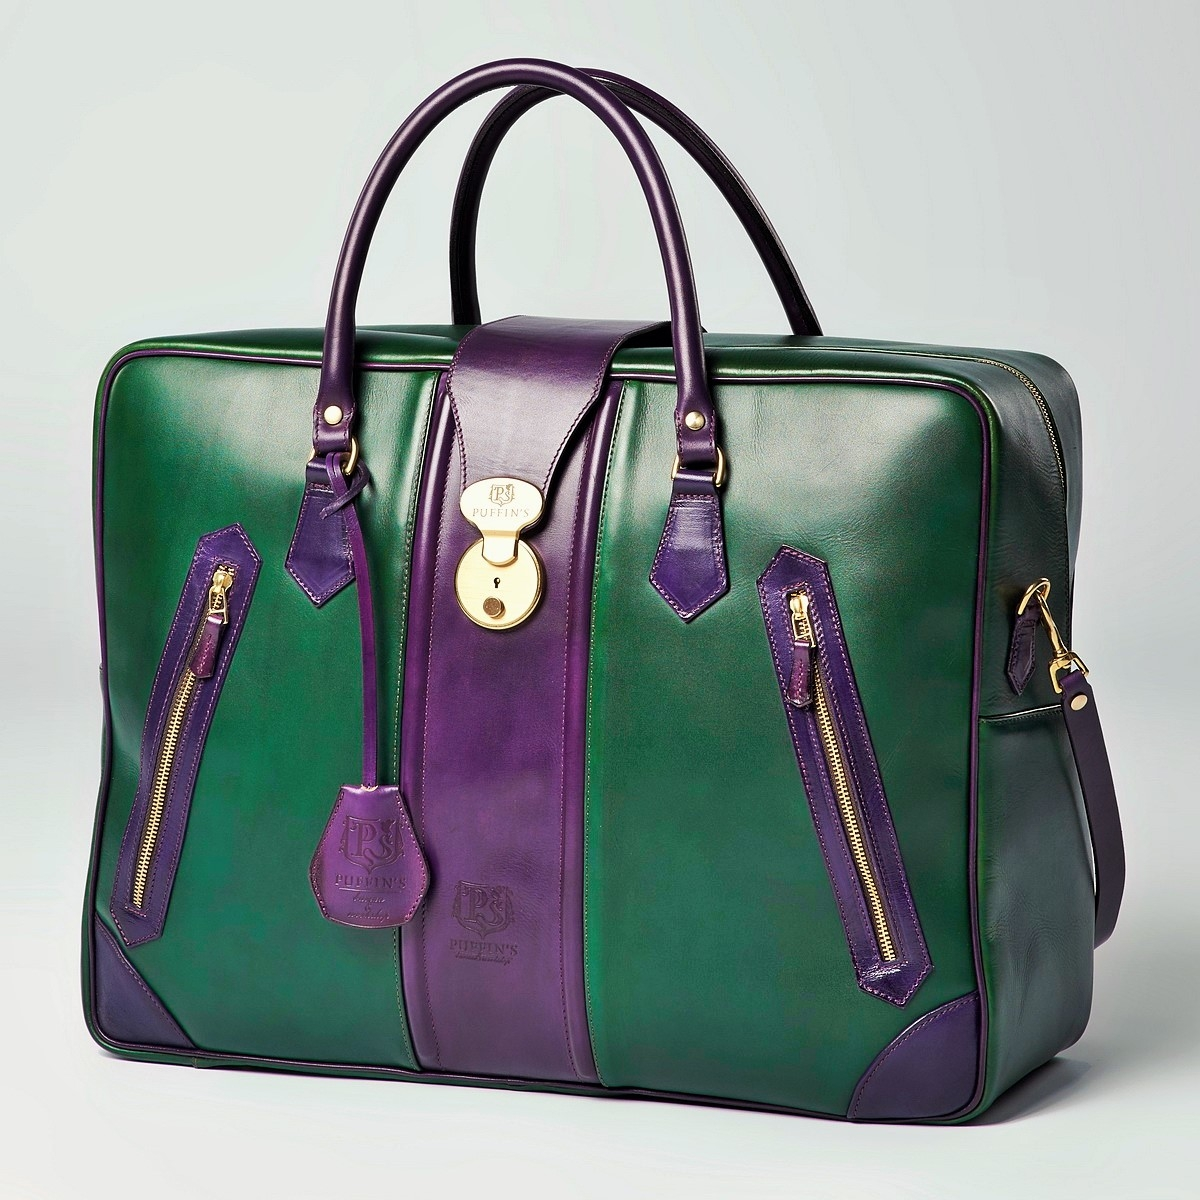 Leather suitcase HOLIDAY violet ink & grassy green